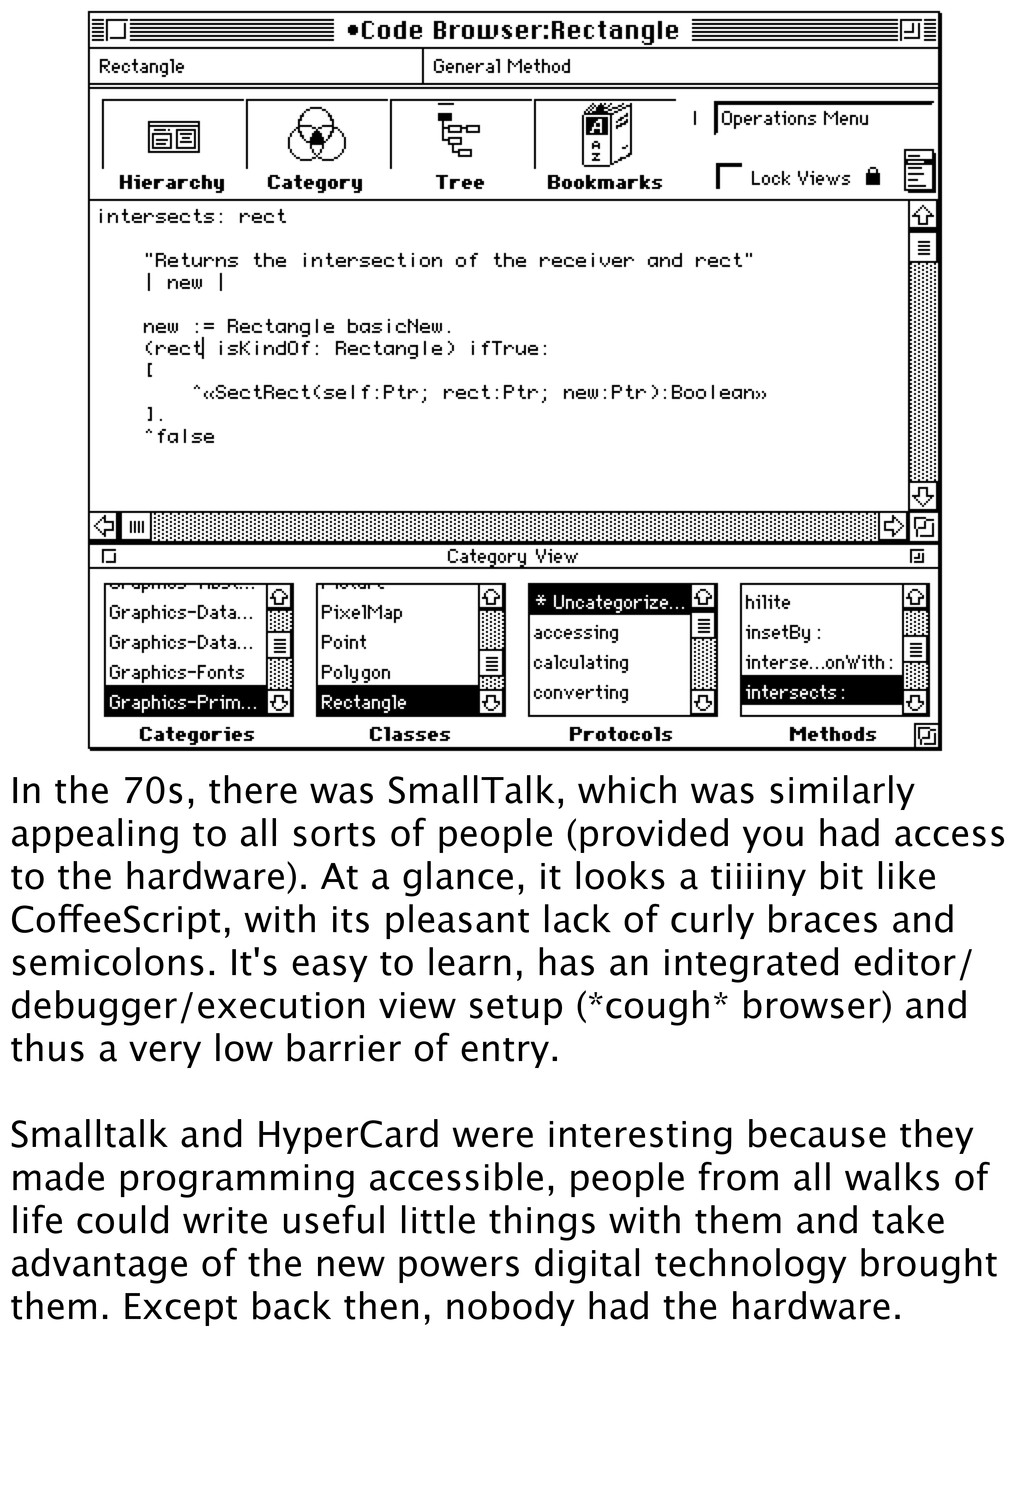 In the 70s, there was SmallTalk, which was simi...